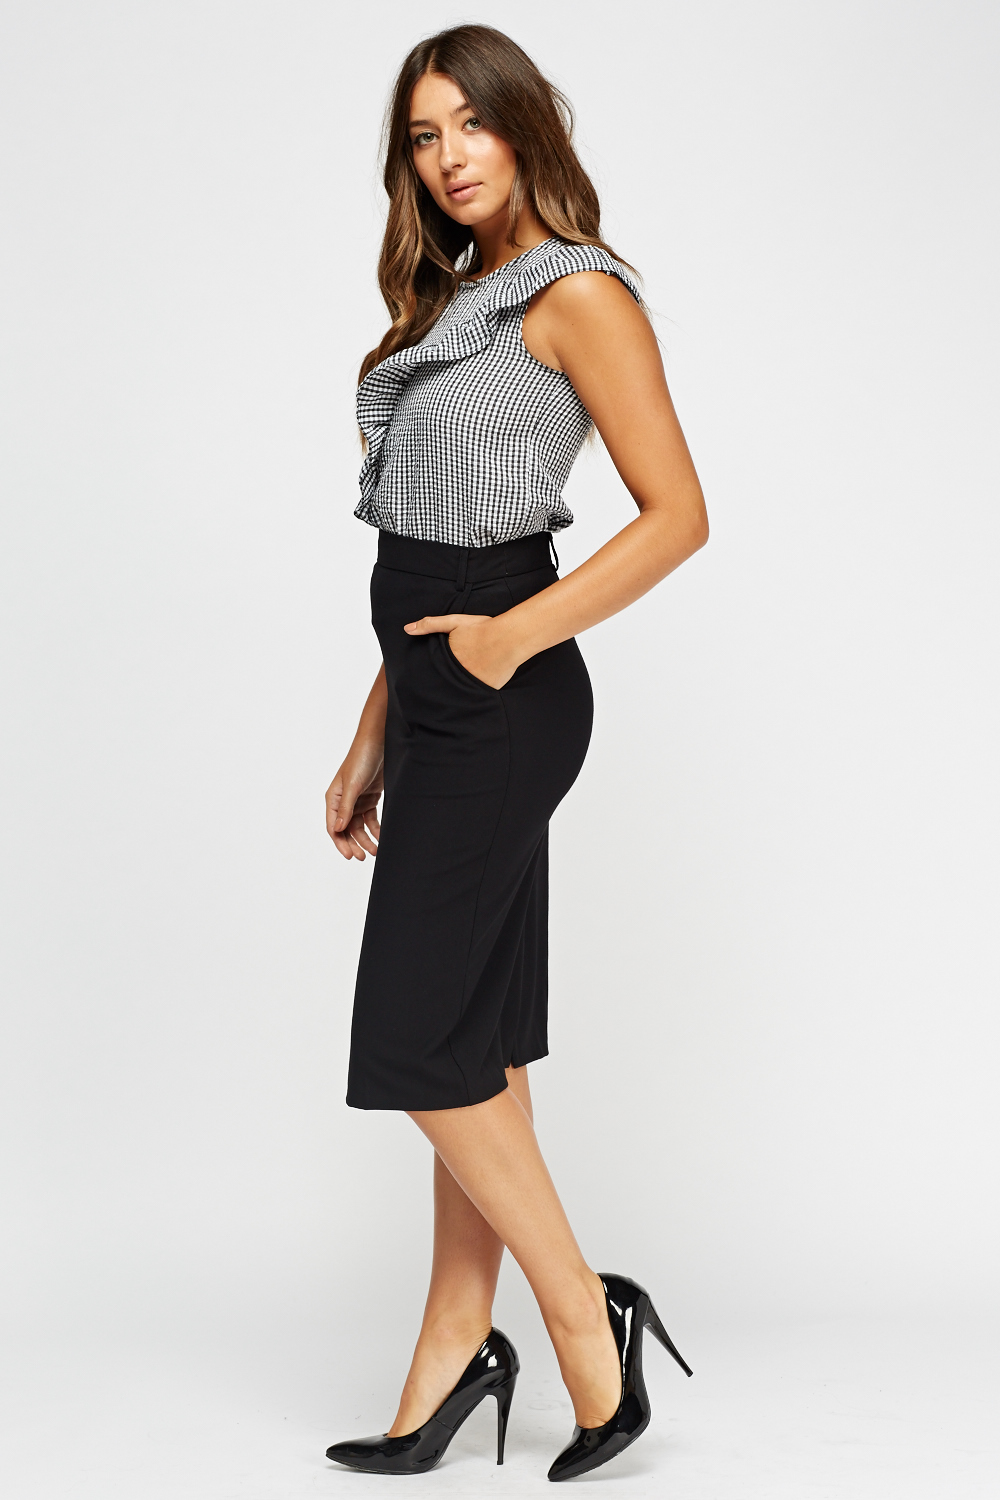 - High-waist pencil skirts. Create curves or accentuate the ones you have with a pencil skirt that sits high above the waist. Keep it simple with a flat front and hidden zippers - or elevate your look by choosing embellishments like medallion-adorned, gold-tone polished buttons for a refined finishing touch.